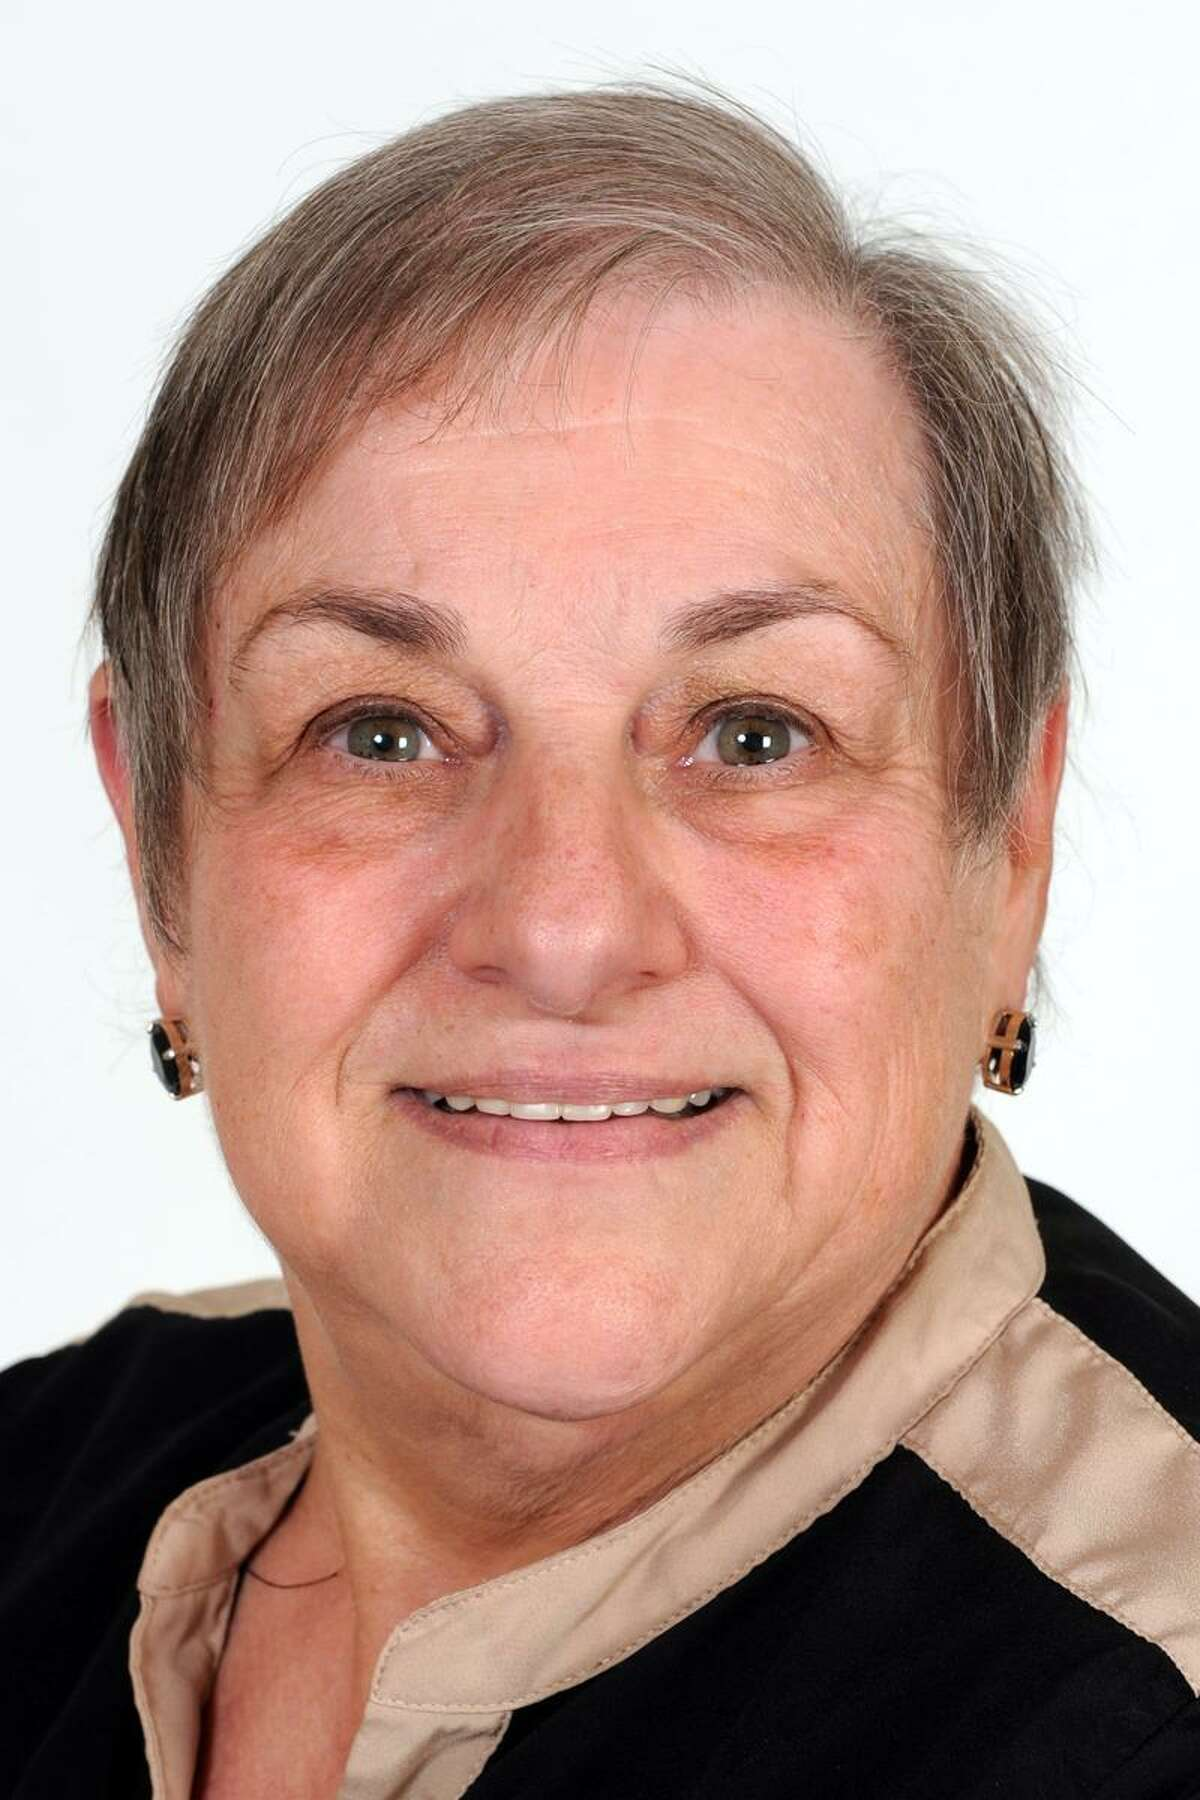 Kathy Johnson, former democratic candidate for First Selectman of Oxford, resigned as a Democrat and will run as an unaffiliated candidate next year.